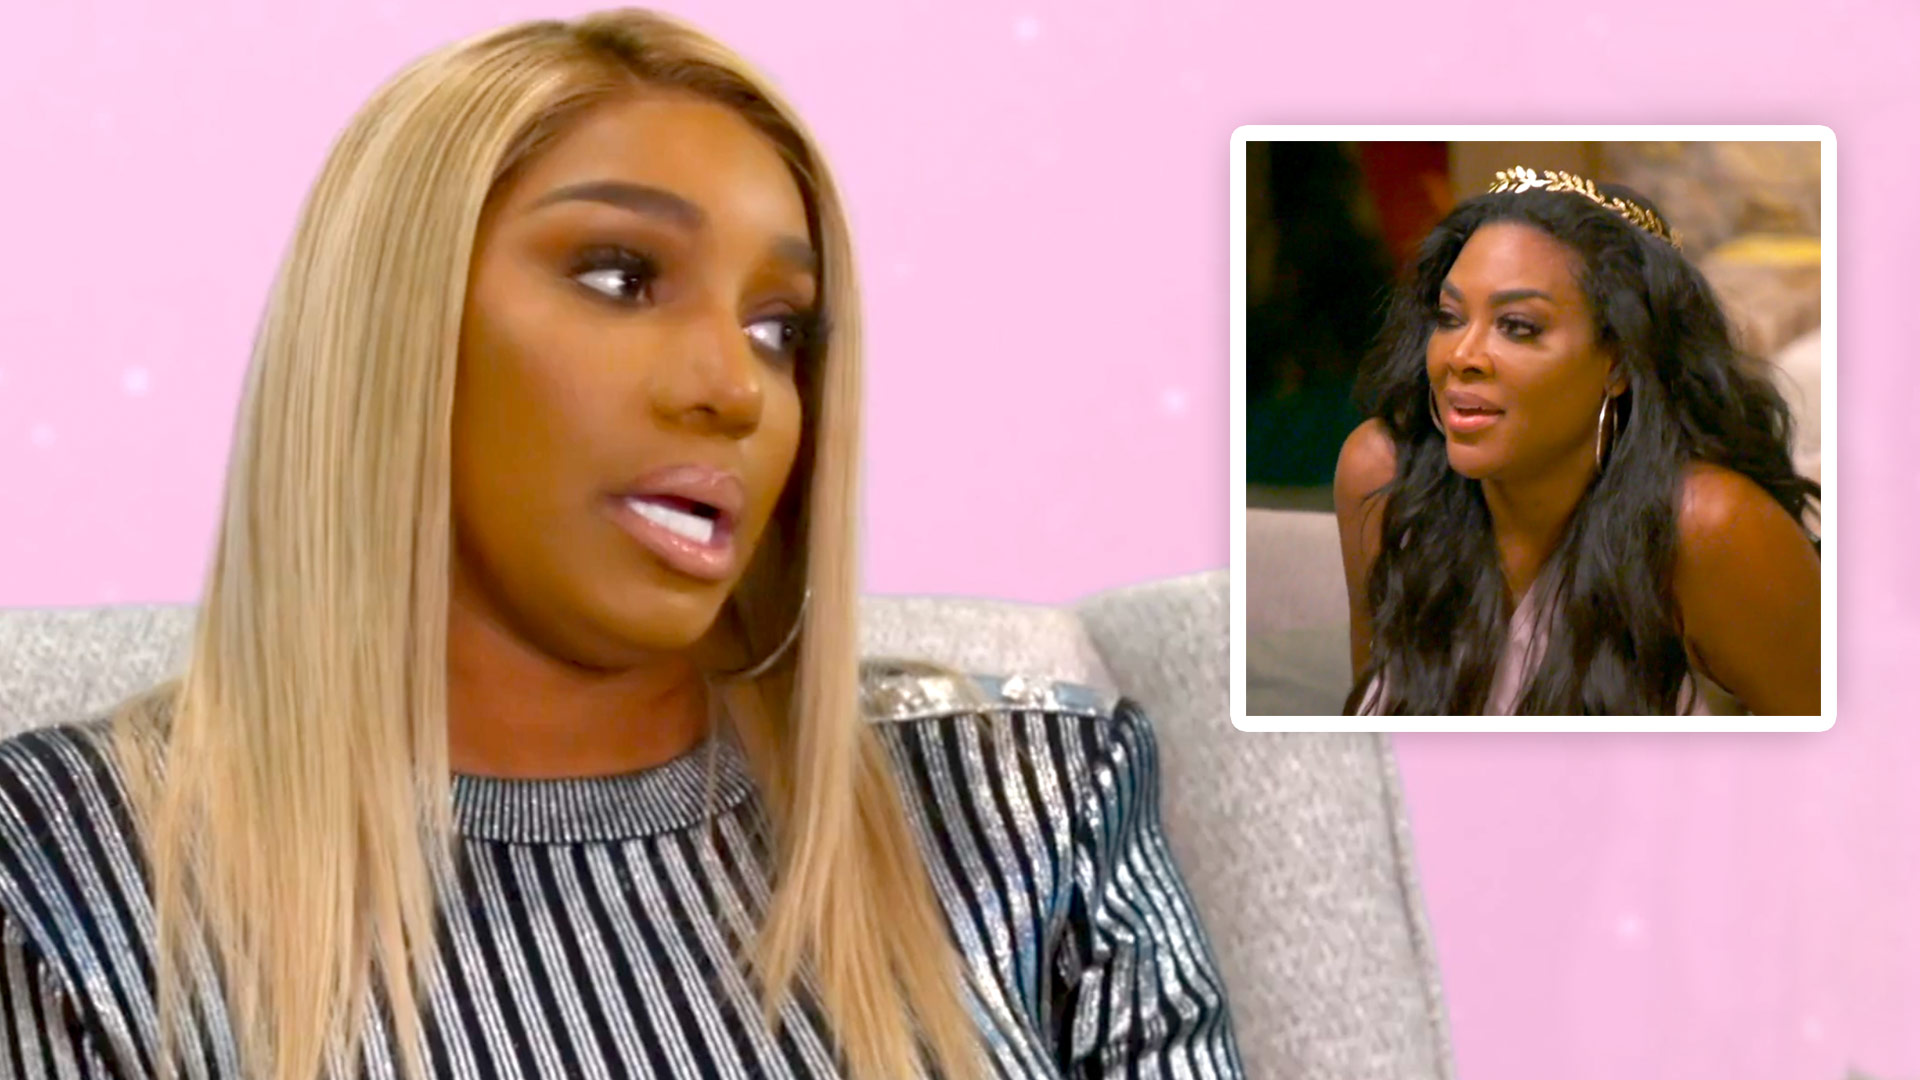 Rhoa 1220 Nene Kenya Drama After Show